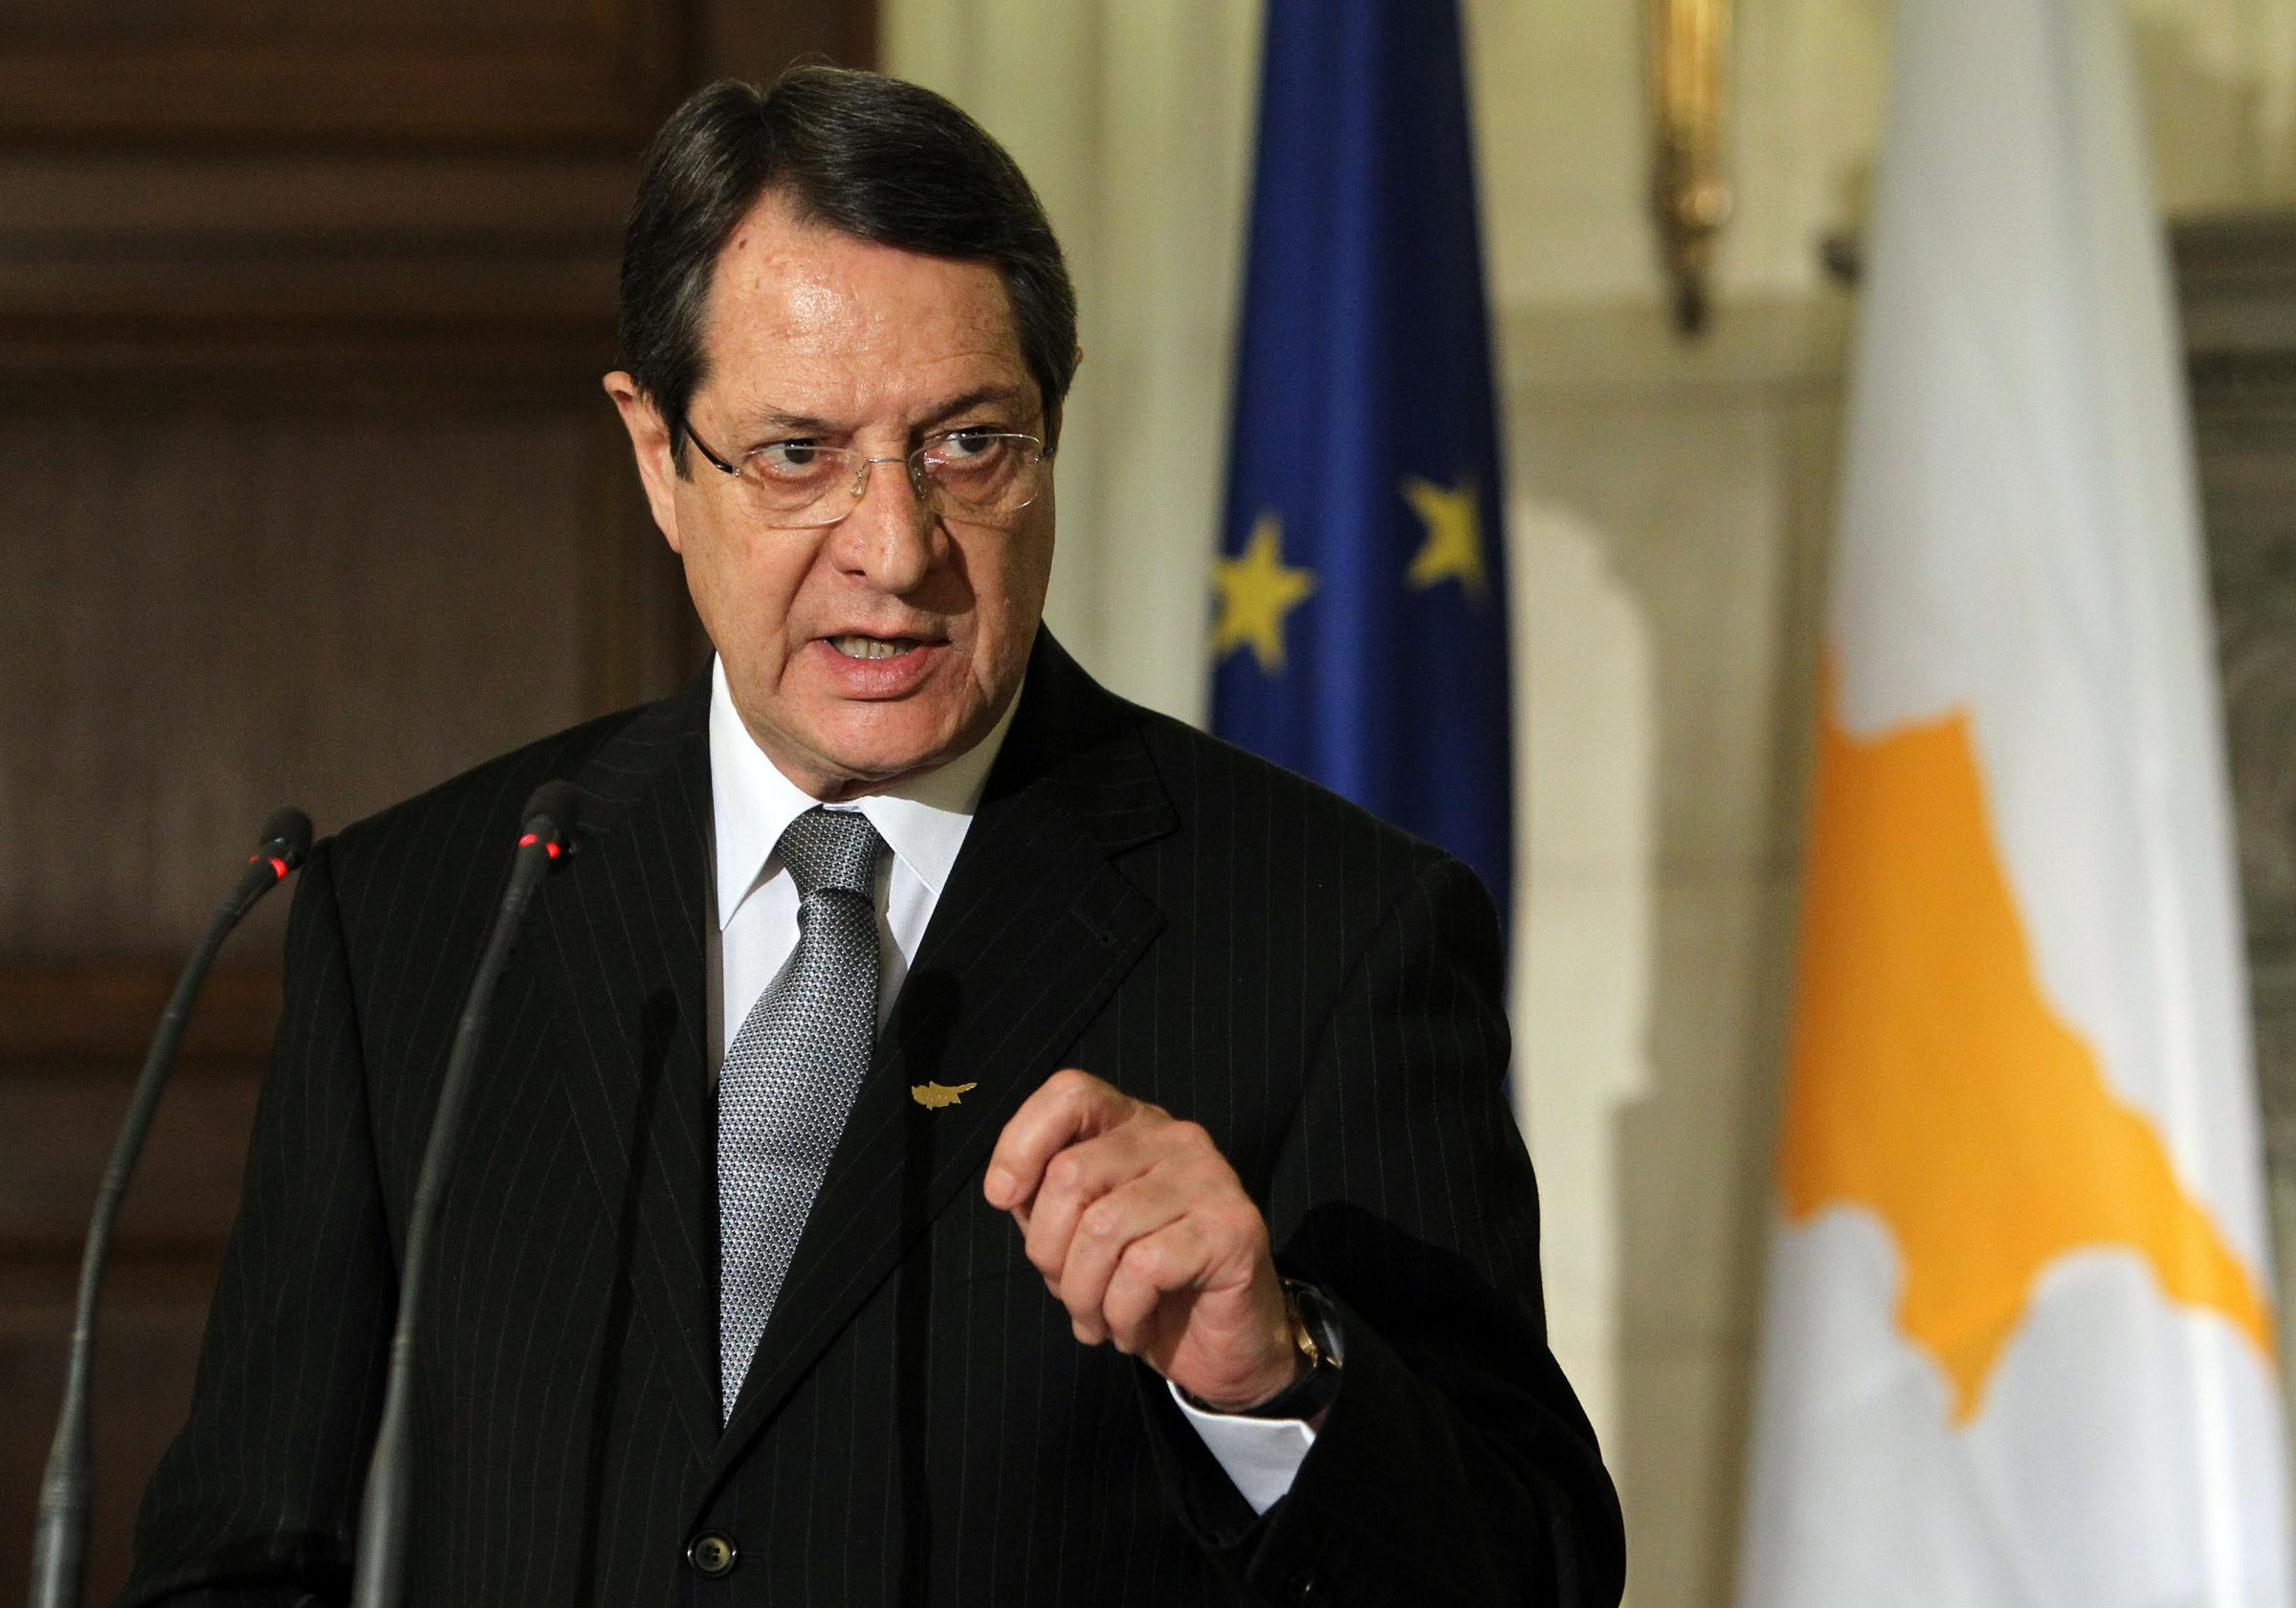 Recently-elected Cypriot President Nicos Anastasiades speaks during a news conference with Greek Prime Minister Antonis Samaras, not seen, at his official residence in Athens on Monday, March 11, 2013. A Greek official said Athens has not received any specific request for aid in recapitalizing Cyprus' ailing banks. Anastasiades is in Greece on his first official foreign visit since his election last month. (AP Photo/Thanassis Stavrakis)